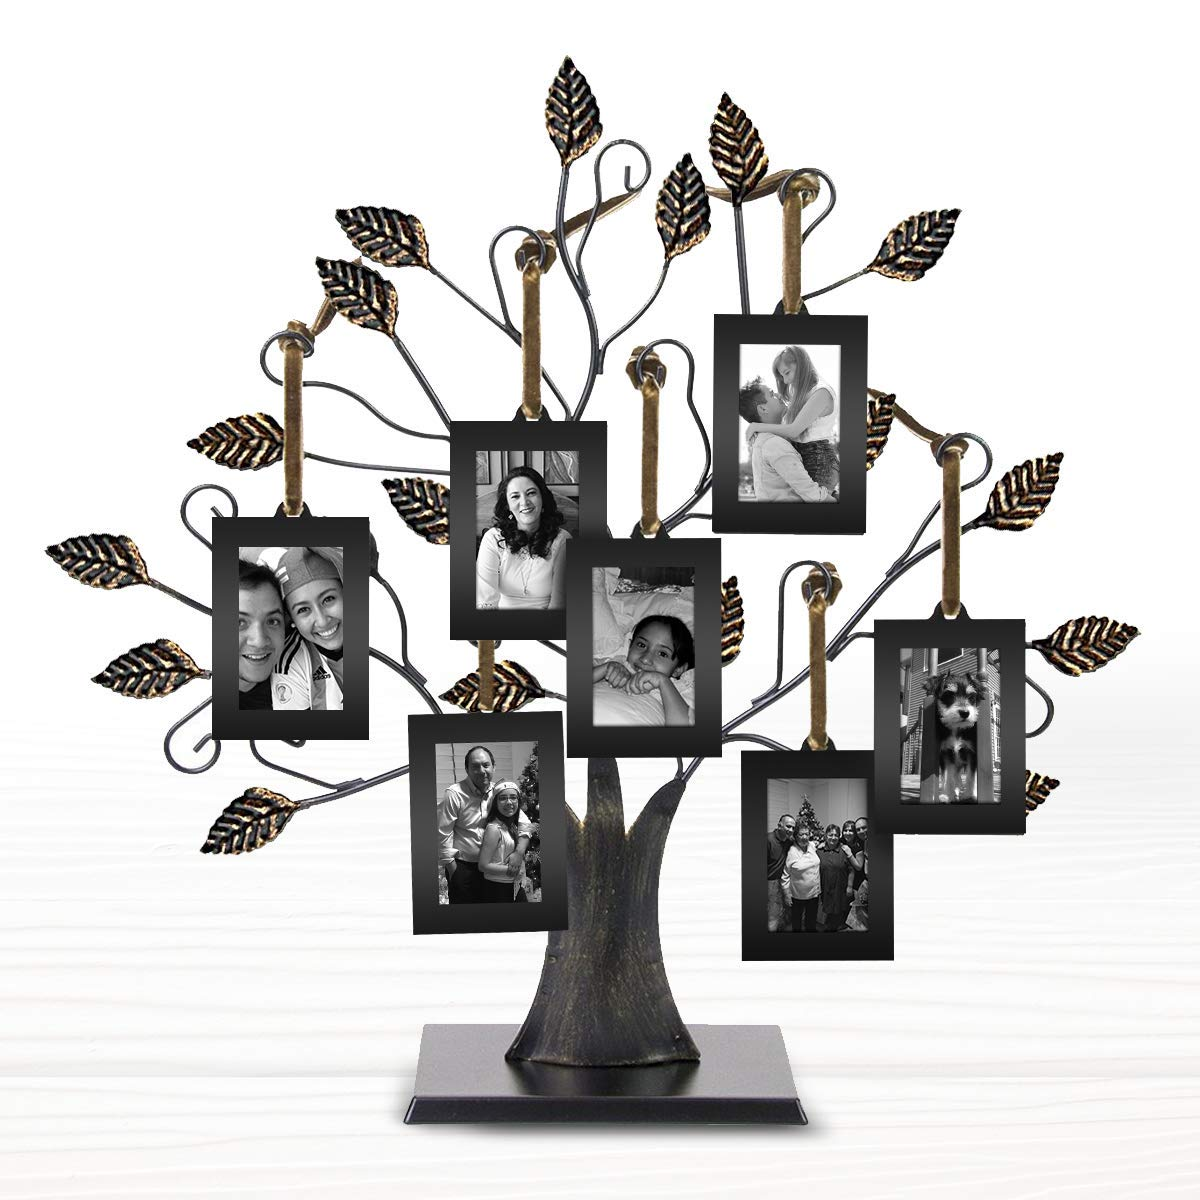 Klikel 13'' Medium Bronze Family Tree of Life Centerpiece Display Stand With 6 Hanging Photo Picture Frames by Klikel